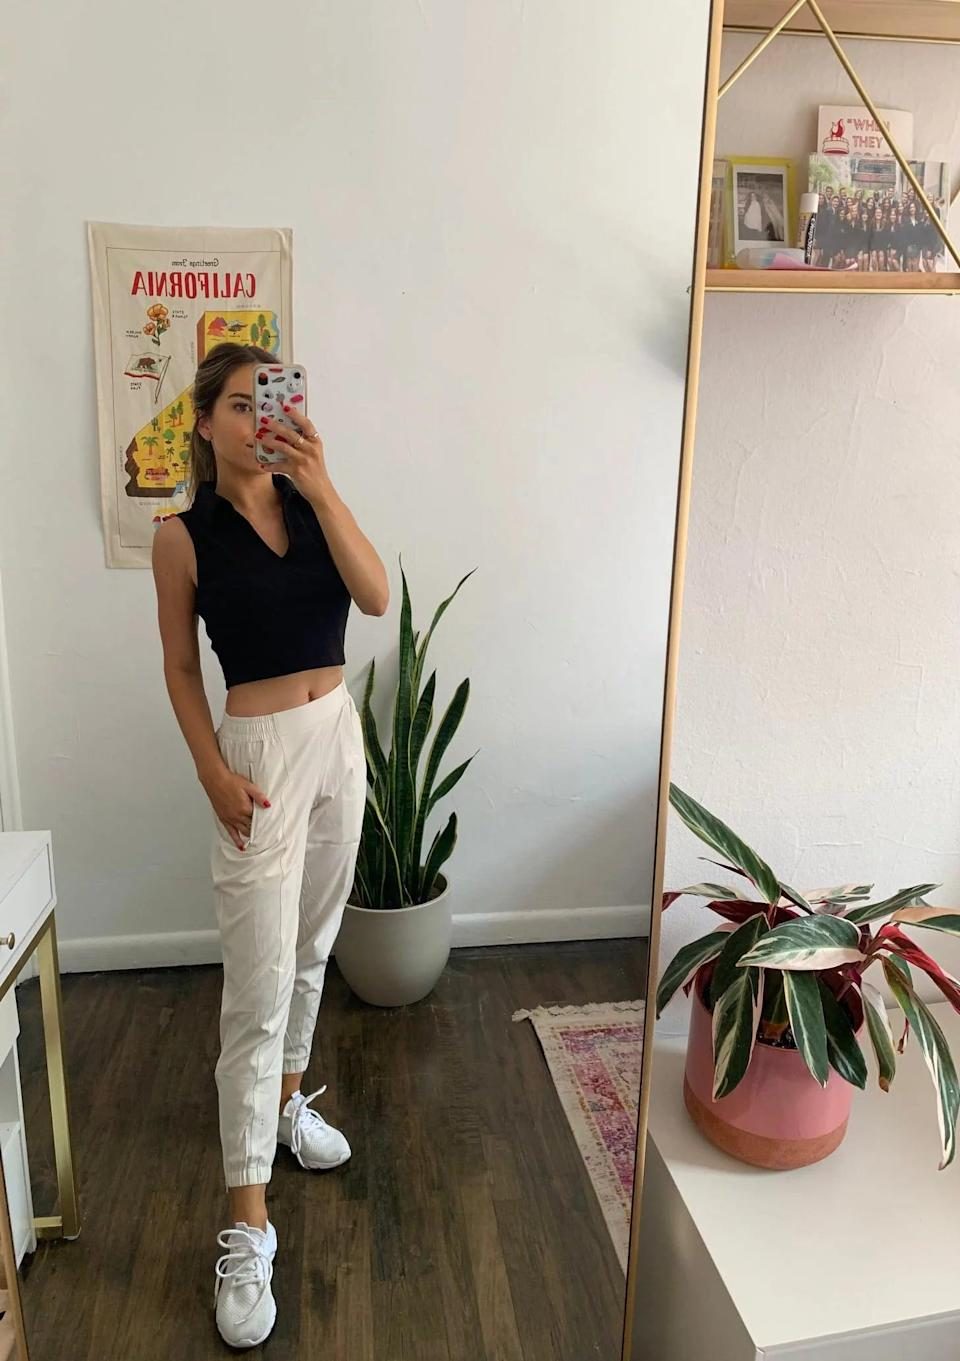 """<p><strong>The item:</strong> <span>Old Navy Mid-Rise StretchTech Jogger Pants</span> ($22-$35, originally $35) </p> <p><strong>What our editor said:</strong> """"Regardless of where I might be, these joggers from Old Navy have the power to transport me anywhere I want. Usually a fan of sweatpants, I decided to upgrade to a lightweight option for summer, and they've made all the difference. These sporty pants give off the perfect """"oh, I'm just on my way to Europe"""" vibe, while also being totally functional for everyday wear. They can be worn as workout pants and paired with a sports bra, or they can be worn as a casual outfit when styled with a crop top and sneakers."""" - Lauren Harano</p> <p>If you want to read more, here is the<a href=""""https://www.popsugar.com/fashion/old-navy-mid-rise-stretchtech-jogger-pants-for-women-review-48478119"""" class=""""link rapid-noclick-resp"""" rel=""""nofollow noopener"""" target=""""_blank"""" data-ylk=""""slk:complete review""""> complete review</a>.</p>"""